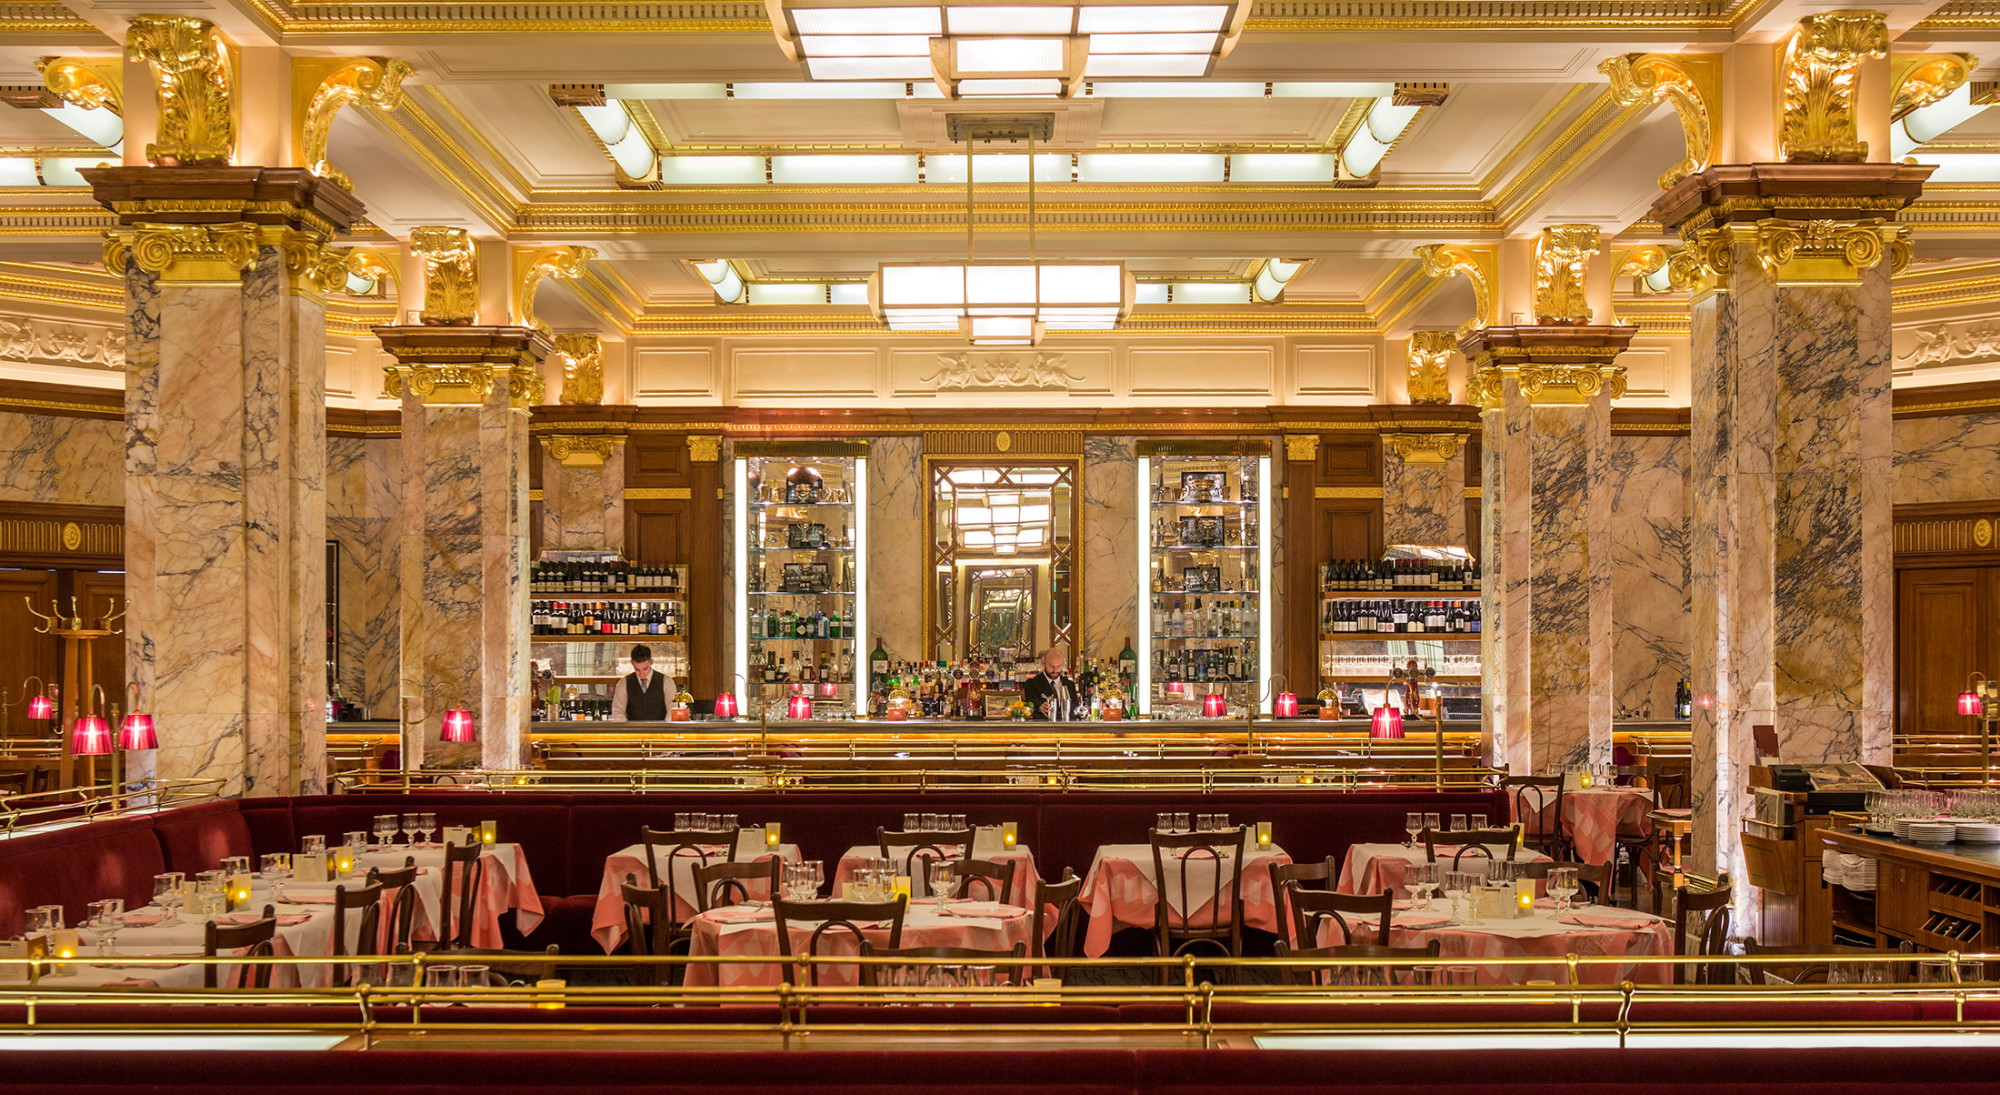 Padella Sister Restaurant Brasserie Zedel May Be The Best Value Meal In London Bloomberg